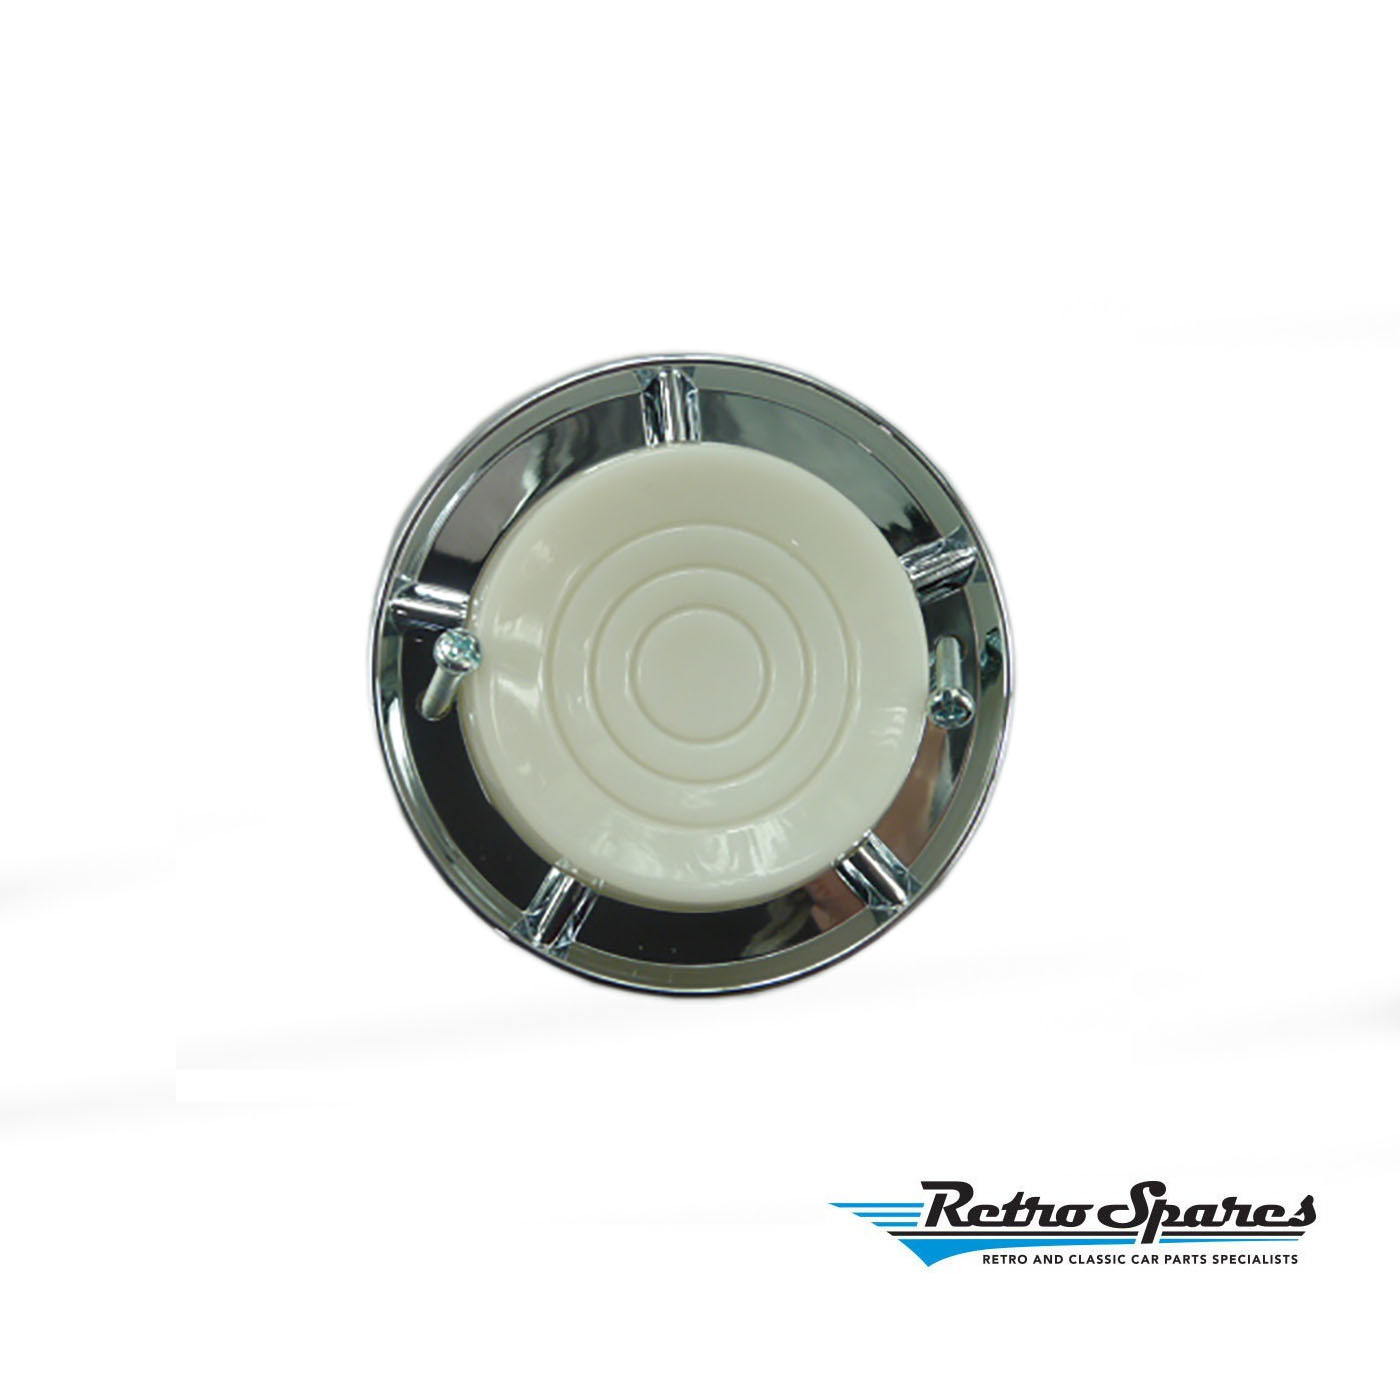 FORD FALCON XM-XP INTERIOR LAMP LENS AND SURROUND *NEW*